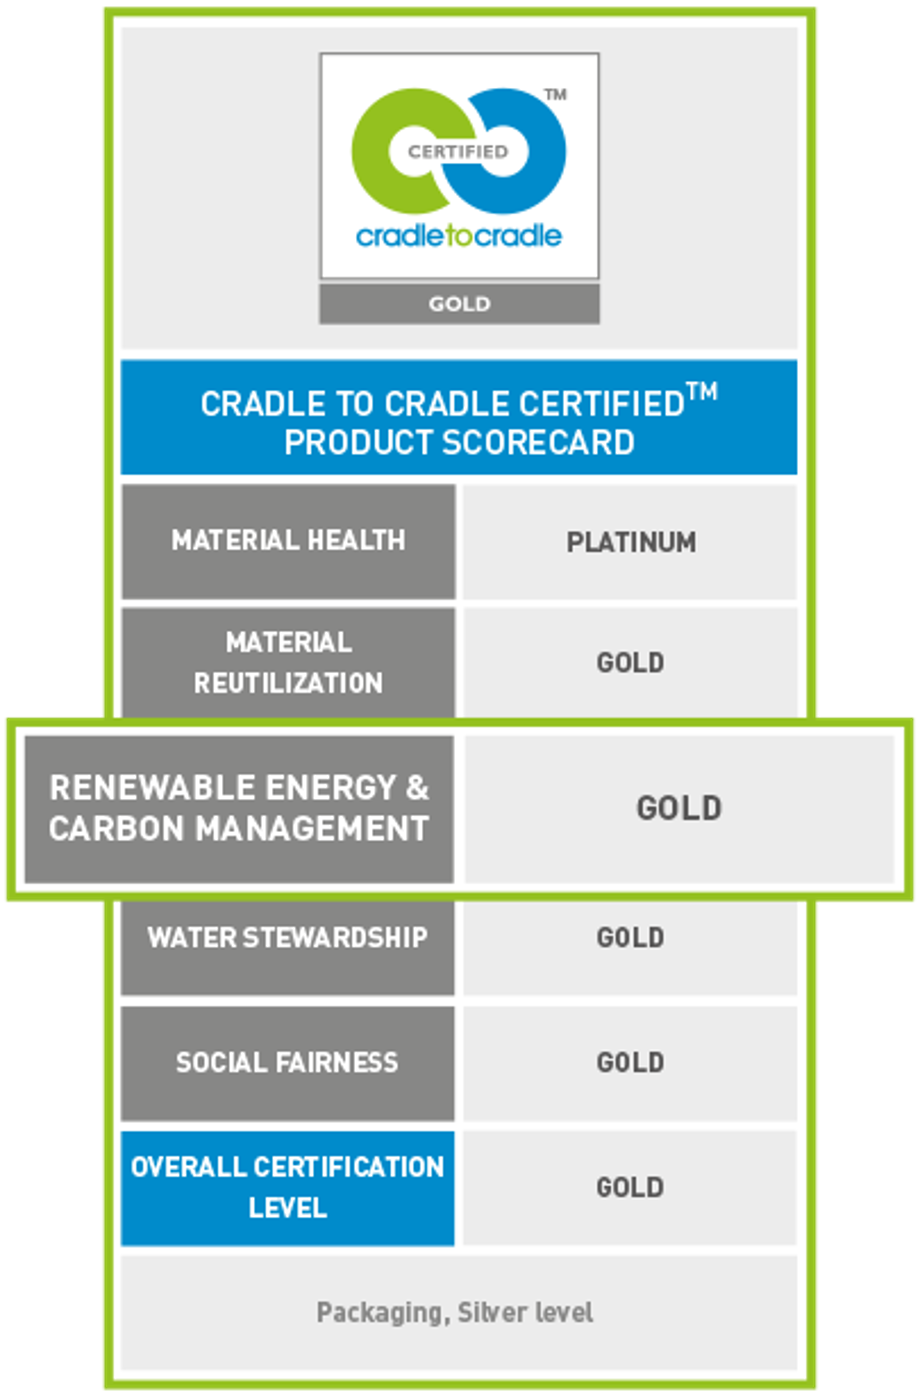 100 renewable electricity for all on site business processes 100 renewable electricity cradletocradle gold certificate xflitez Gallery